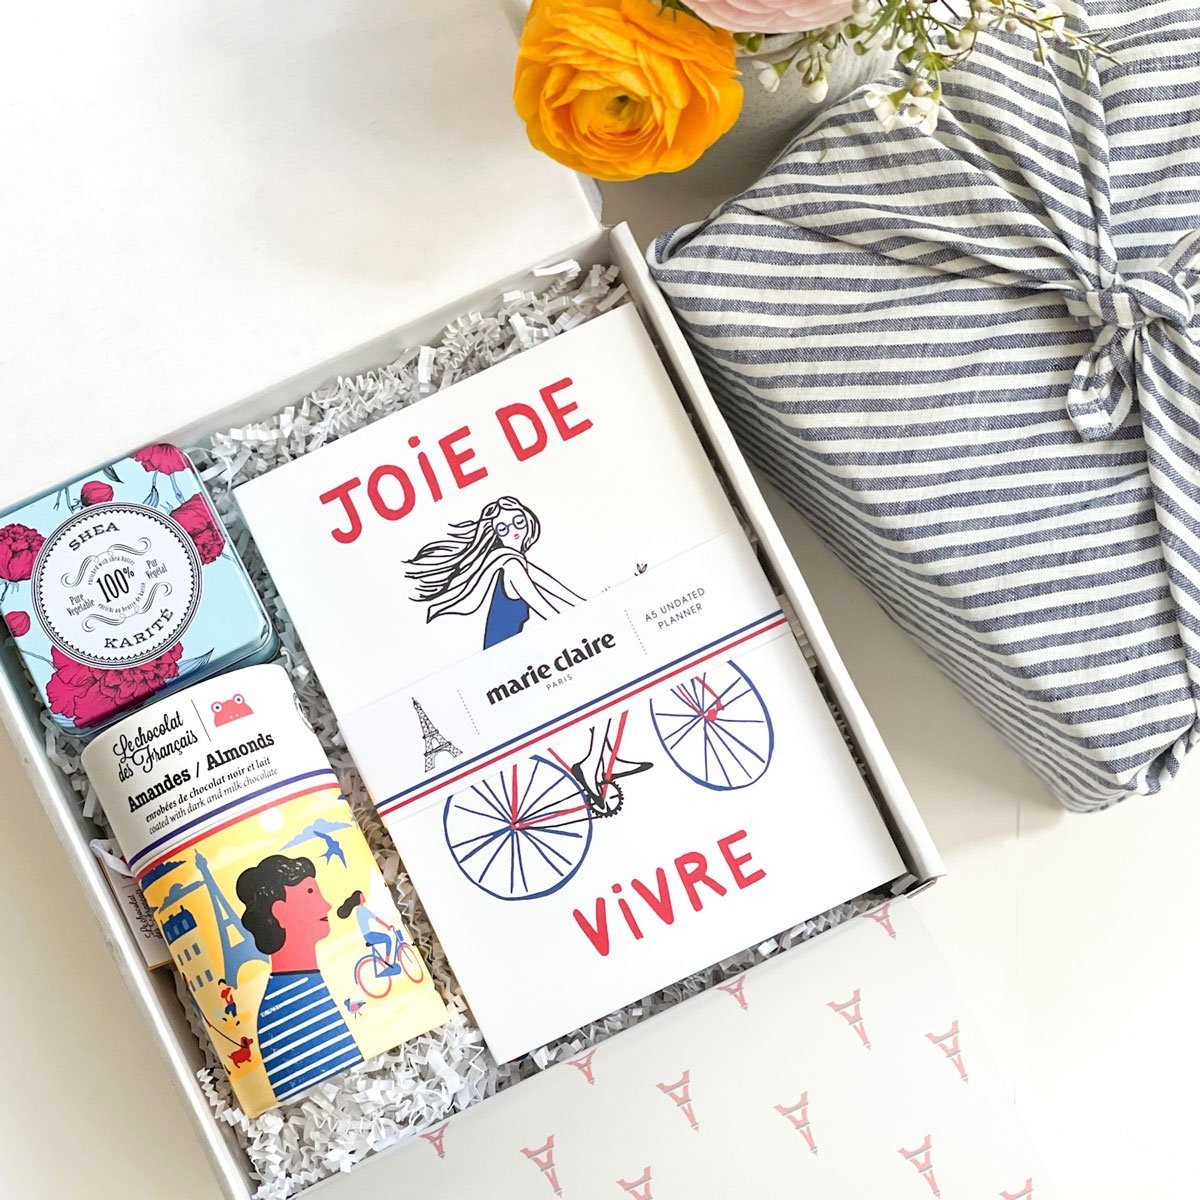 KADOO Joie De Vivre – Parisian theme gift box. Wrapped in Furoshiki stripes French linen. Contains: Marie Claire Paris journal, dark and milk chocolate almond, and shea travel soap.